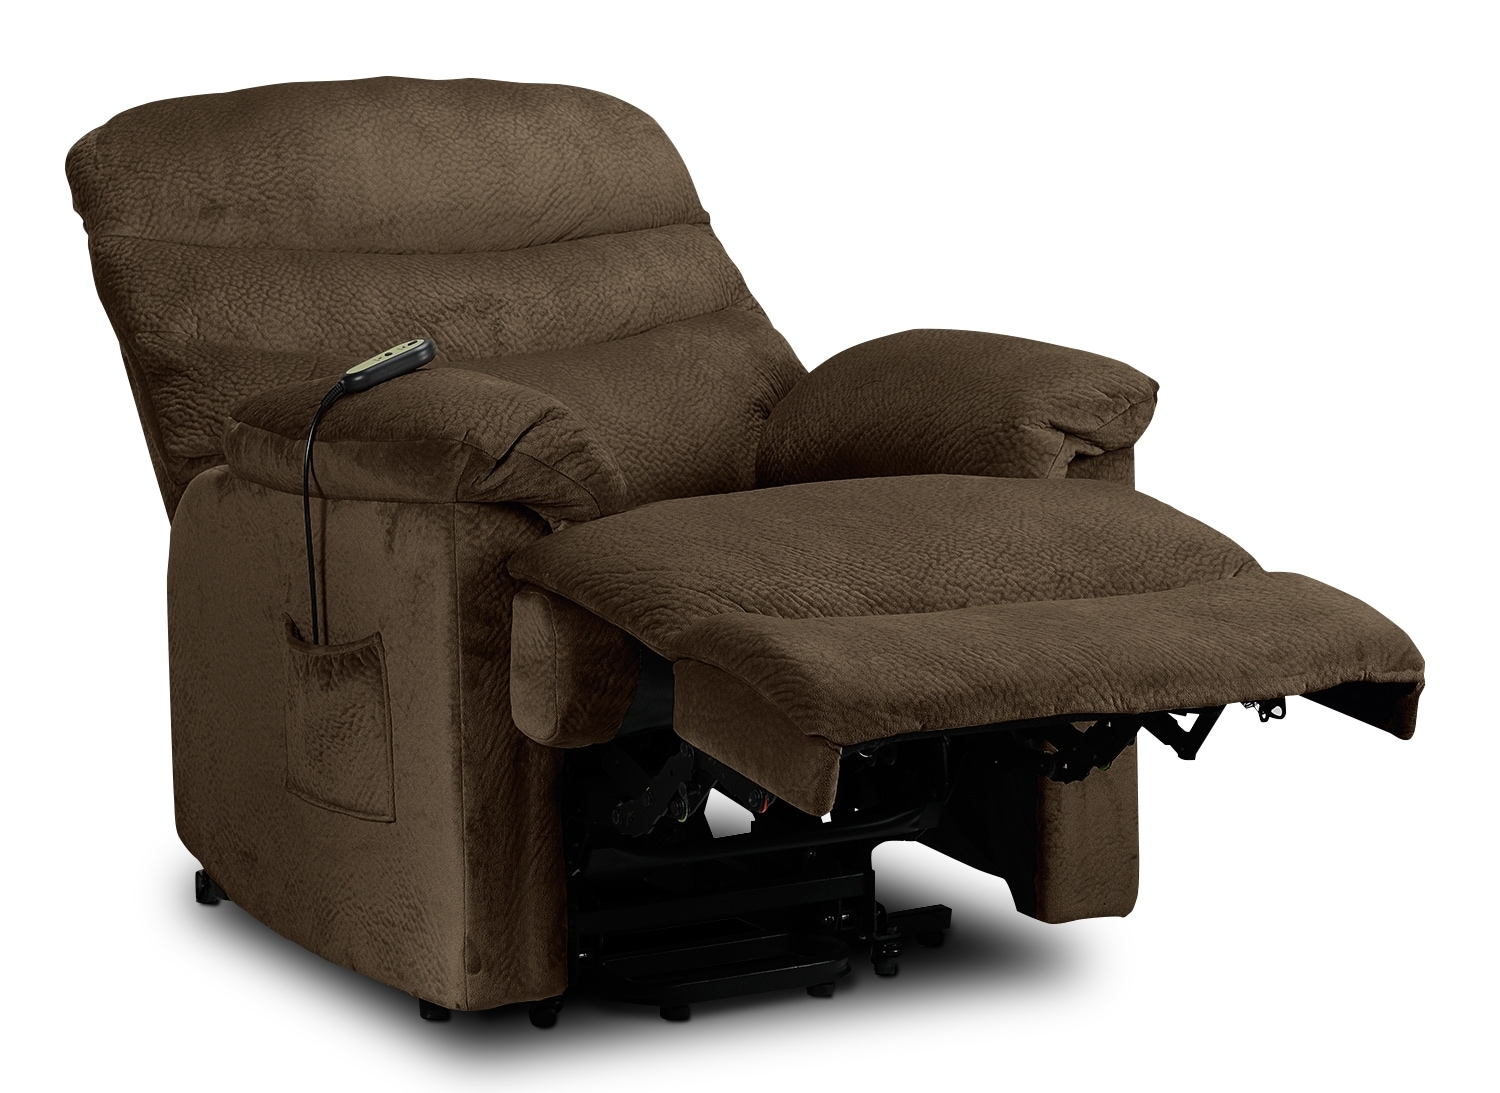 Recliners That Lift You Out  sc 1 th 192 & Recliners That Lift You Out | Leather Sleeper Sofa Sale islam-shia.org